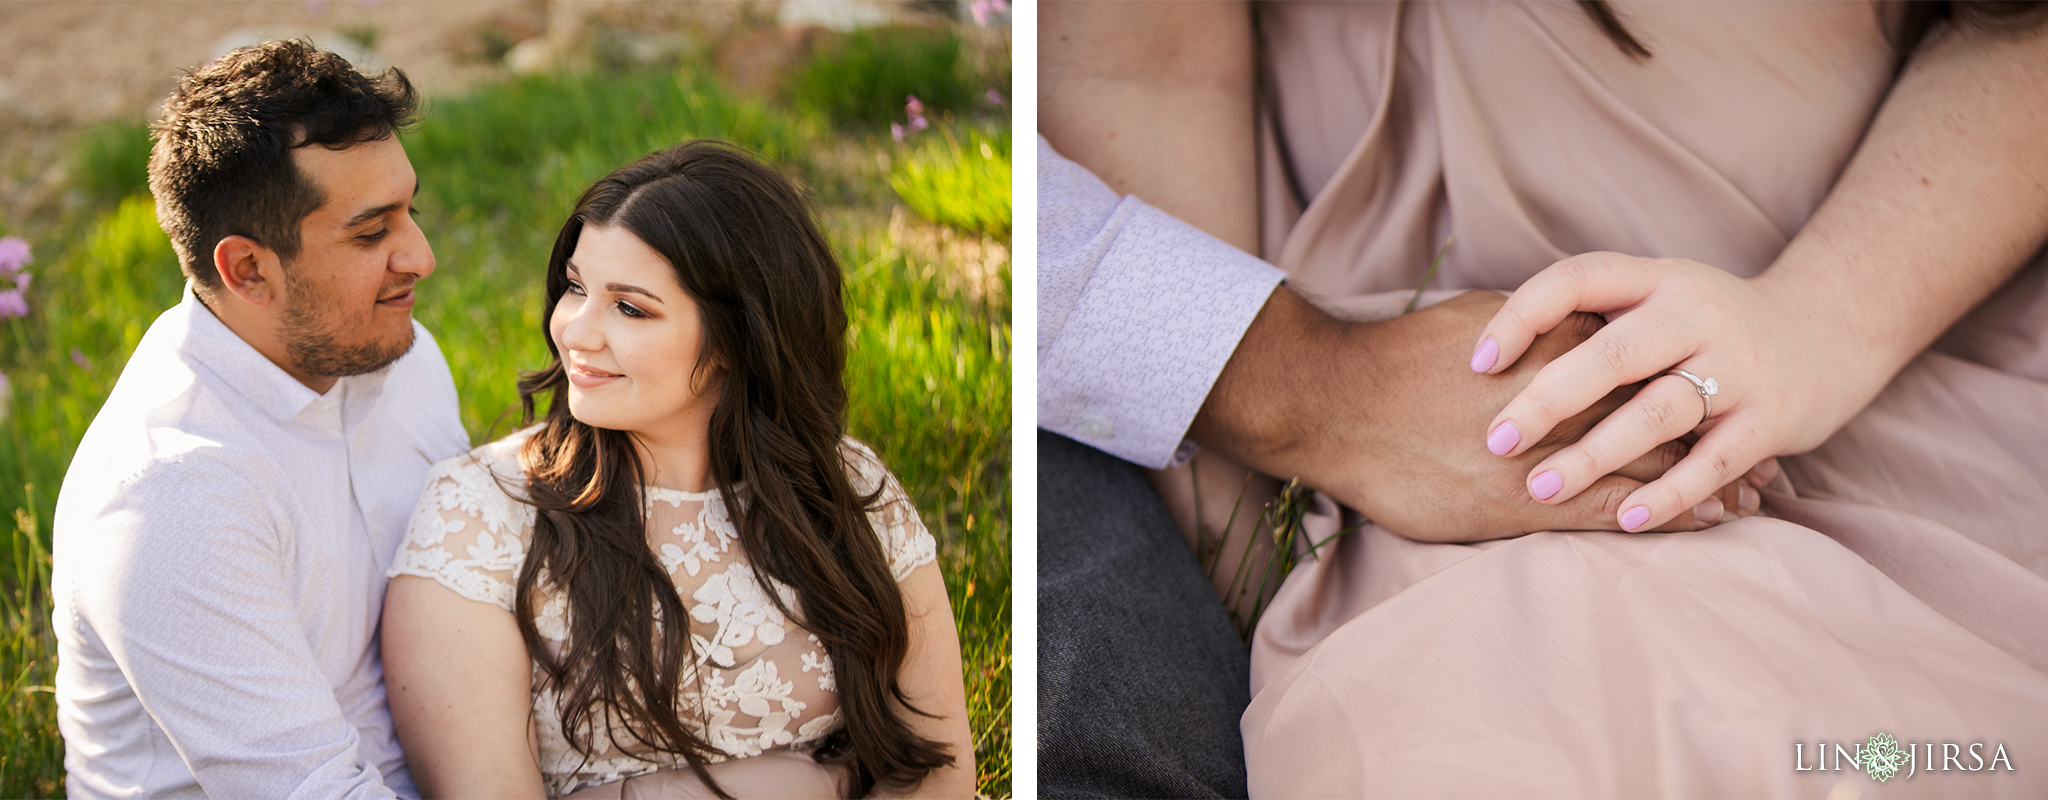 05 Jeffrey Open Space Orange County Engagement Photography